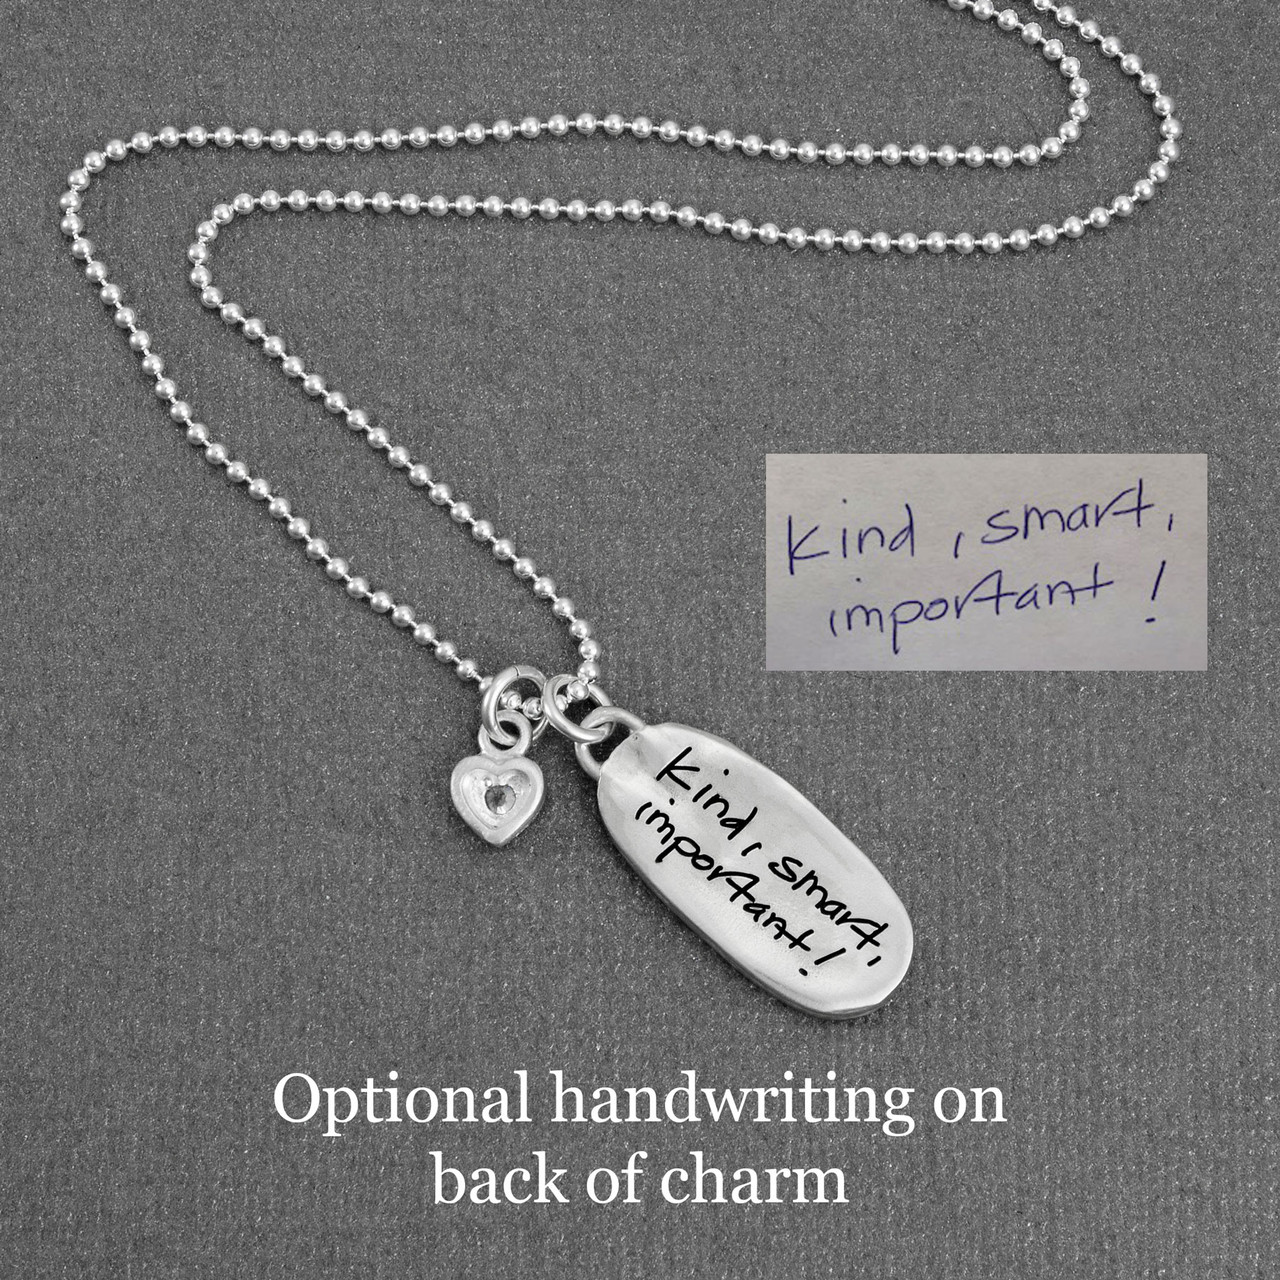 Handwriting on silver oval necklace, with the actual handwriting, showing the back of charm